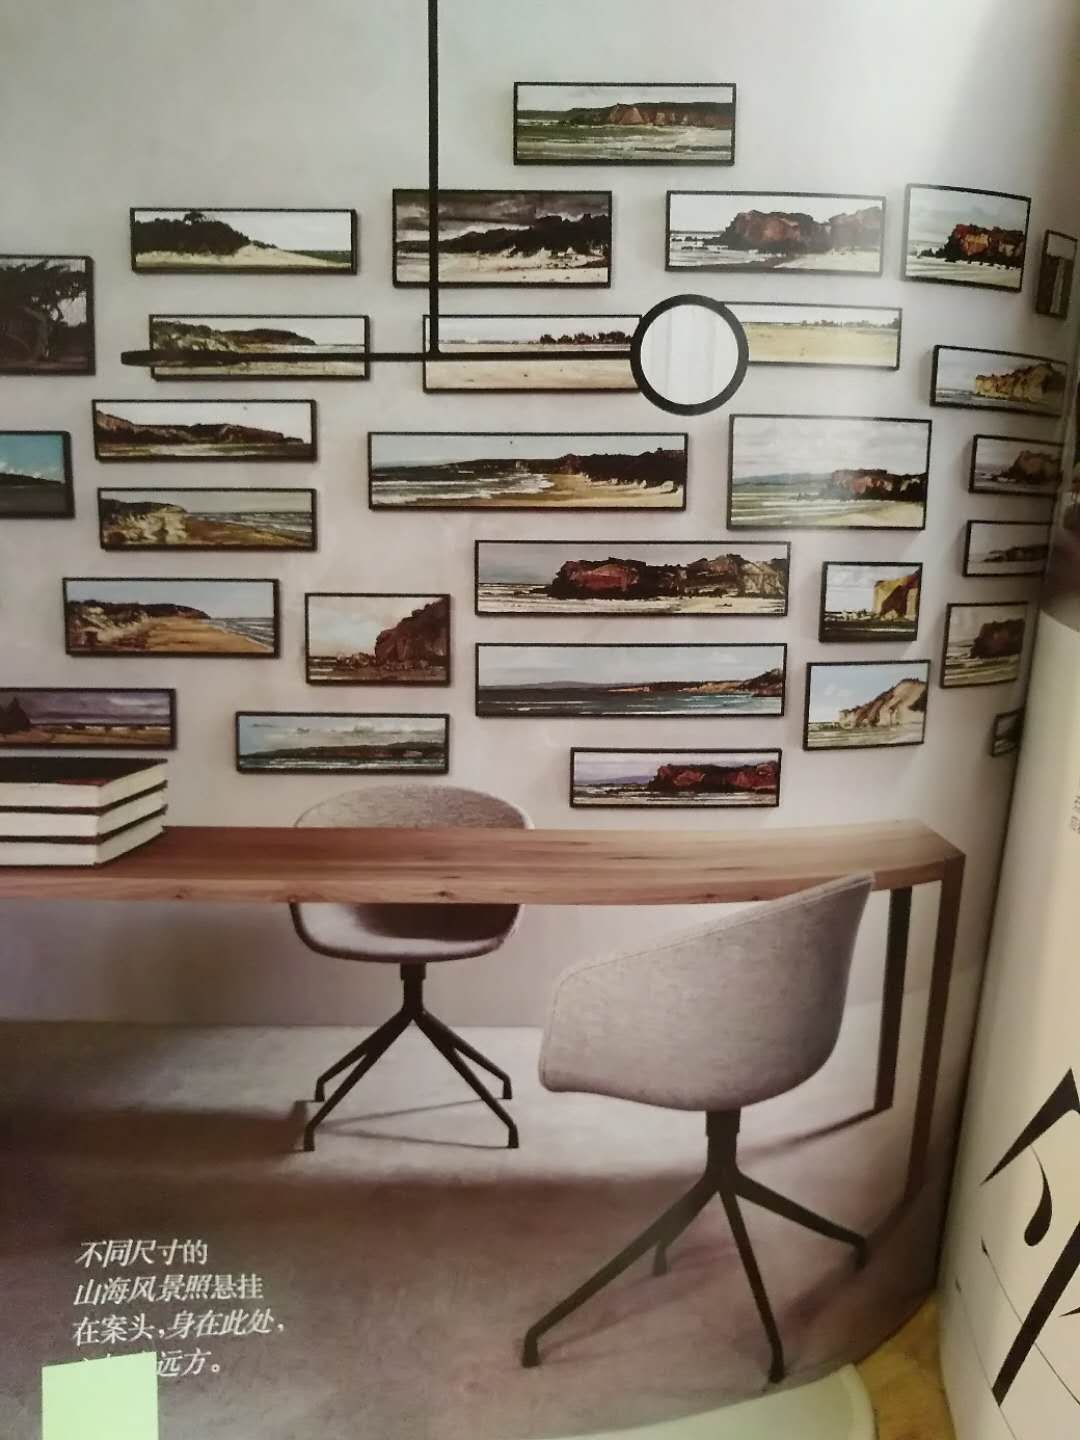 Pin by YE XIAOHONG on 现代 Interior, Furniture, Coffee table